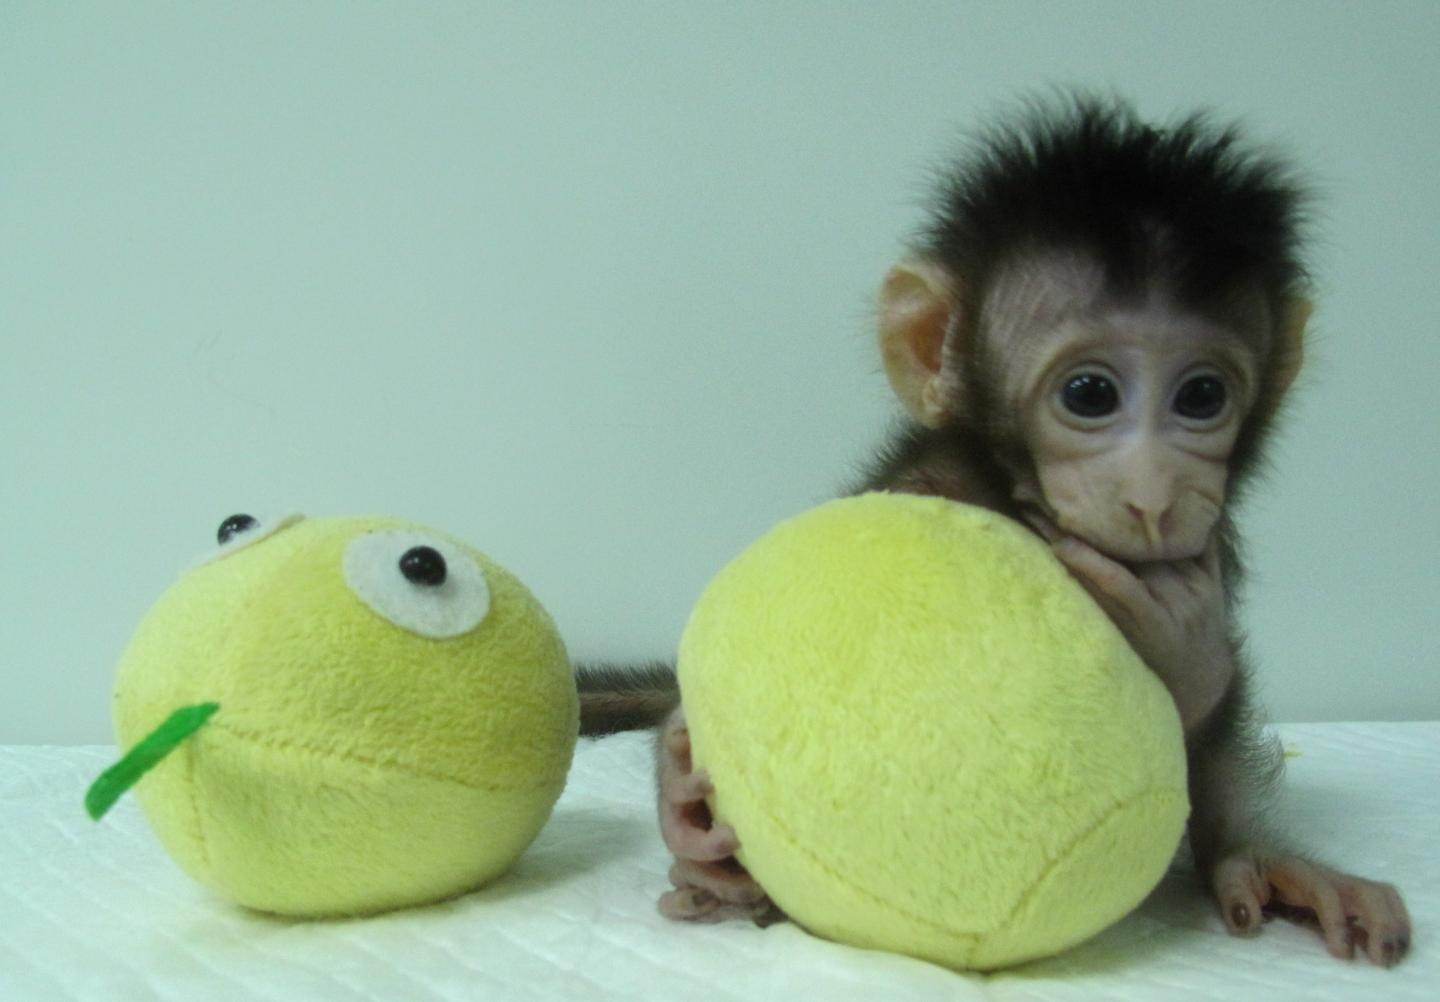 Hua Hua, one of the first monkey clones made by somatic cell nuclear transfer. [Qiang Sun and Mu-ming Poo / Chinese Academy of Sciences]